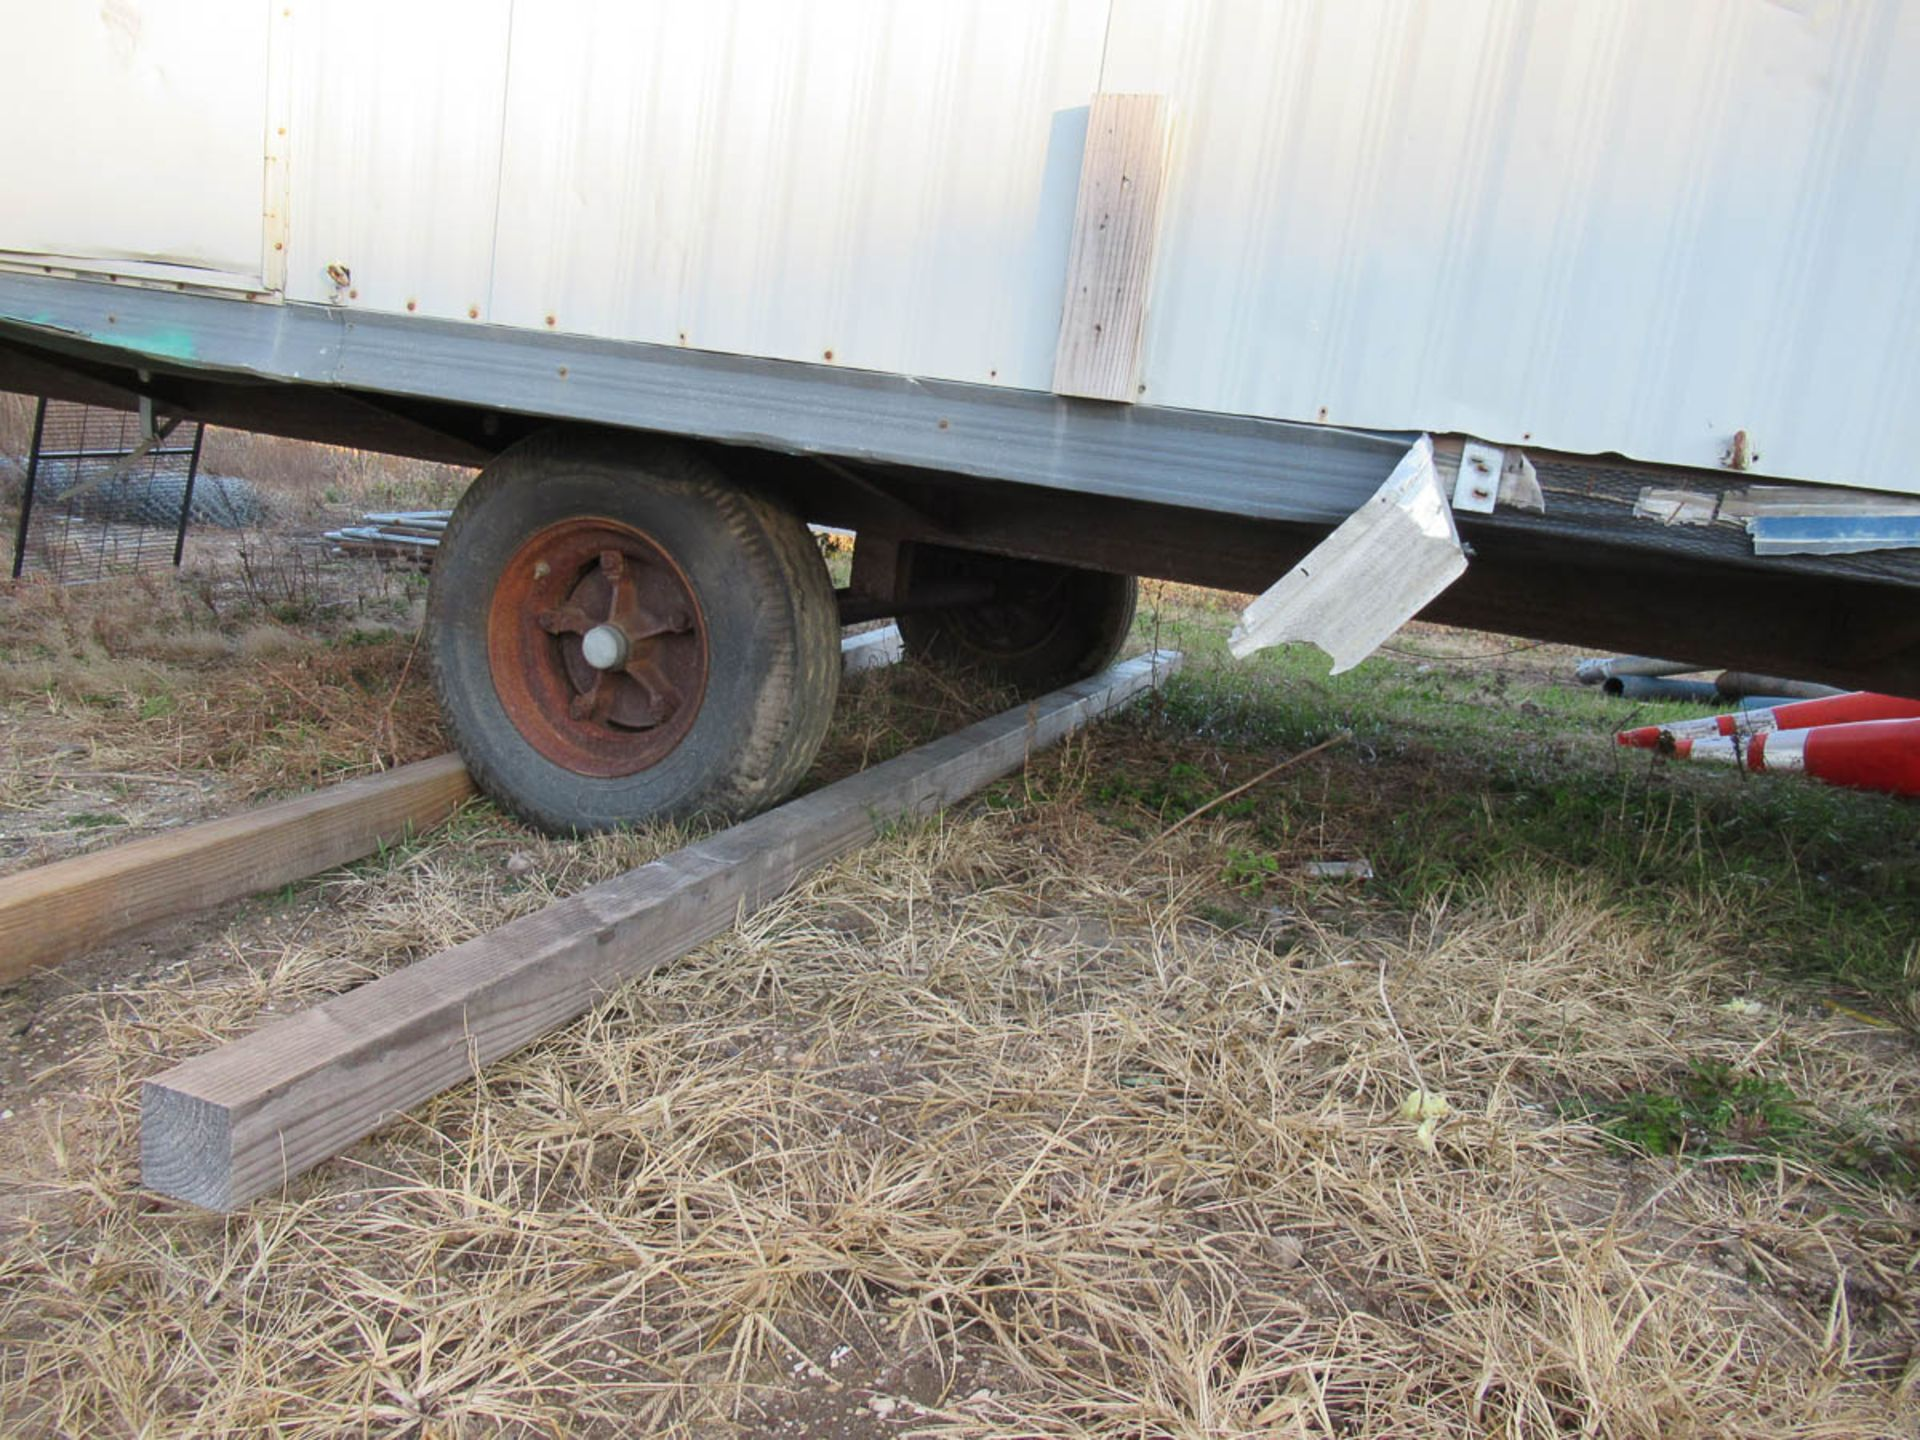 APPROXIMATELY 28' OFFICE TRAILER [LOCATED @ MARINE PARKWAY BRIDGE - QUEENS SIDE] - Image 8 of 9